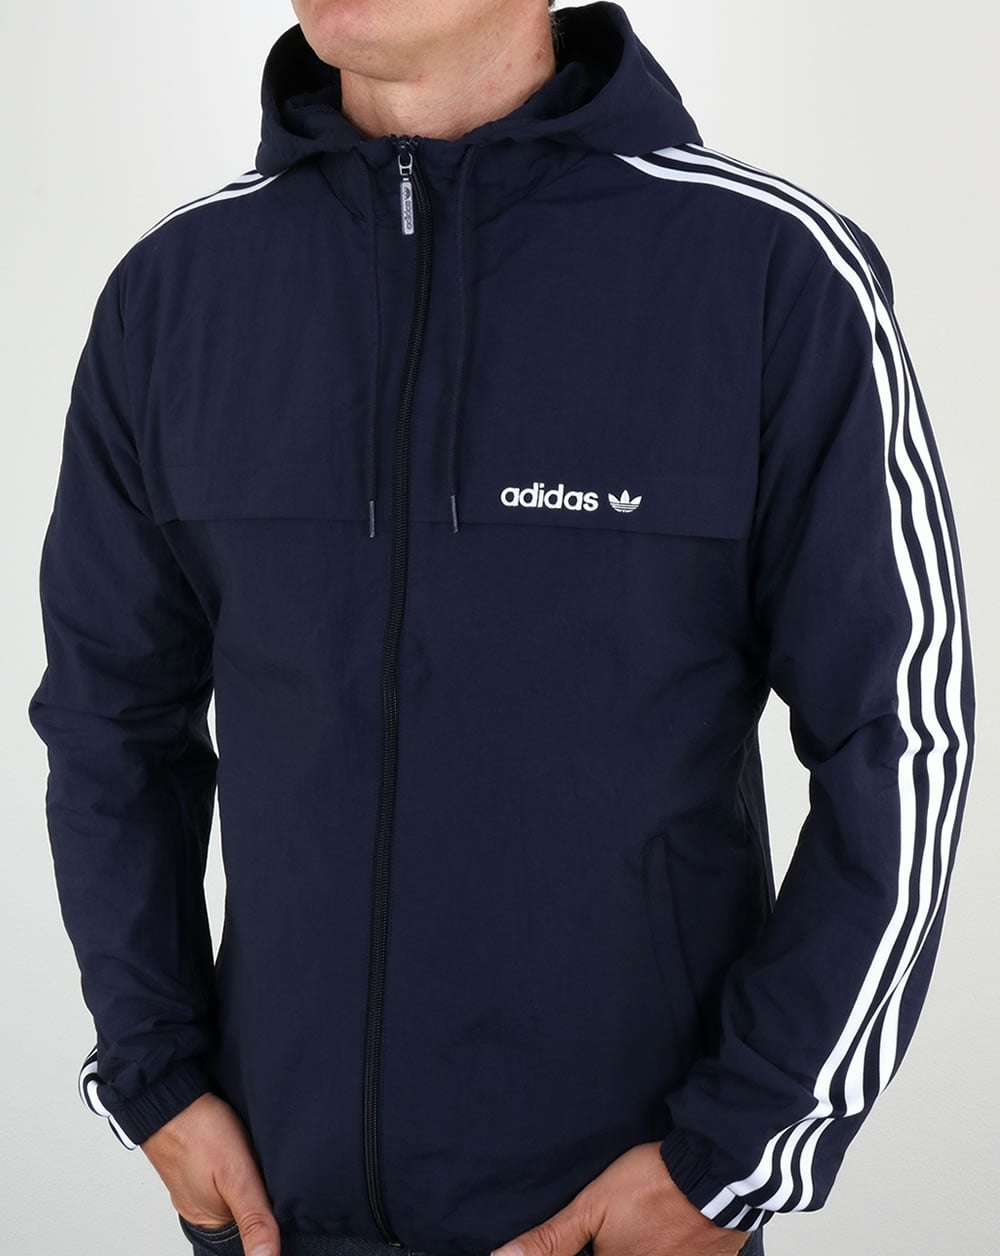 Adidas Originals 3 Striped Windbreaker Blue Jacket Rain